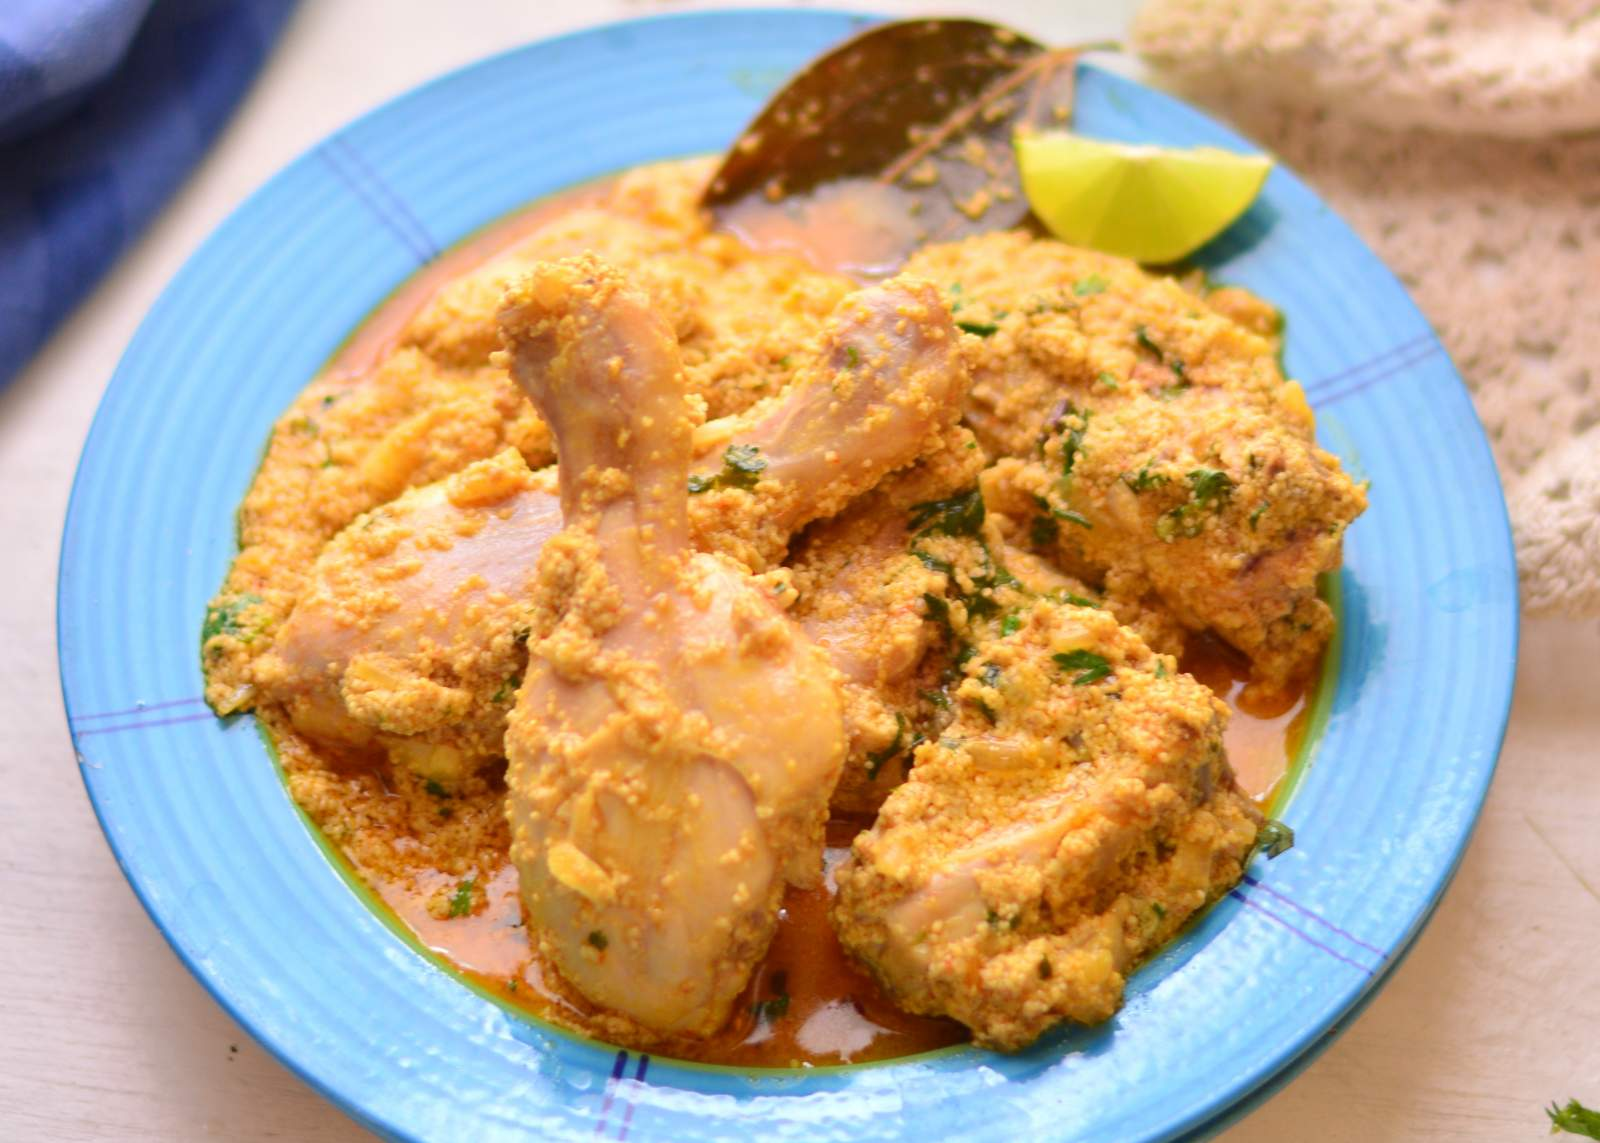 Posto chicken recipe bengali chicken in poppy seed paste by posto chicken recipe bengali chicken in poppy seed paste forumfinder Choice Image